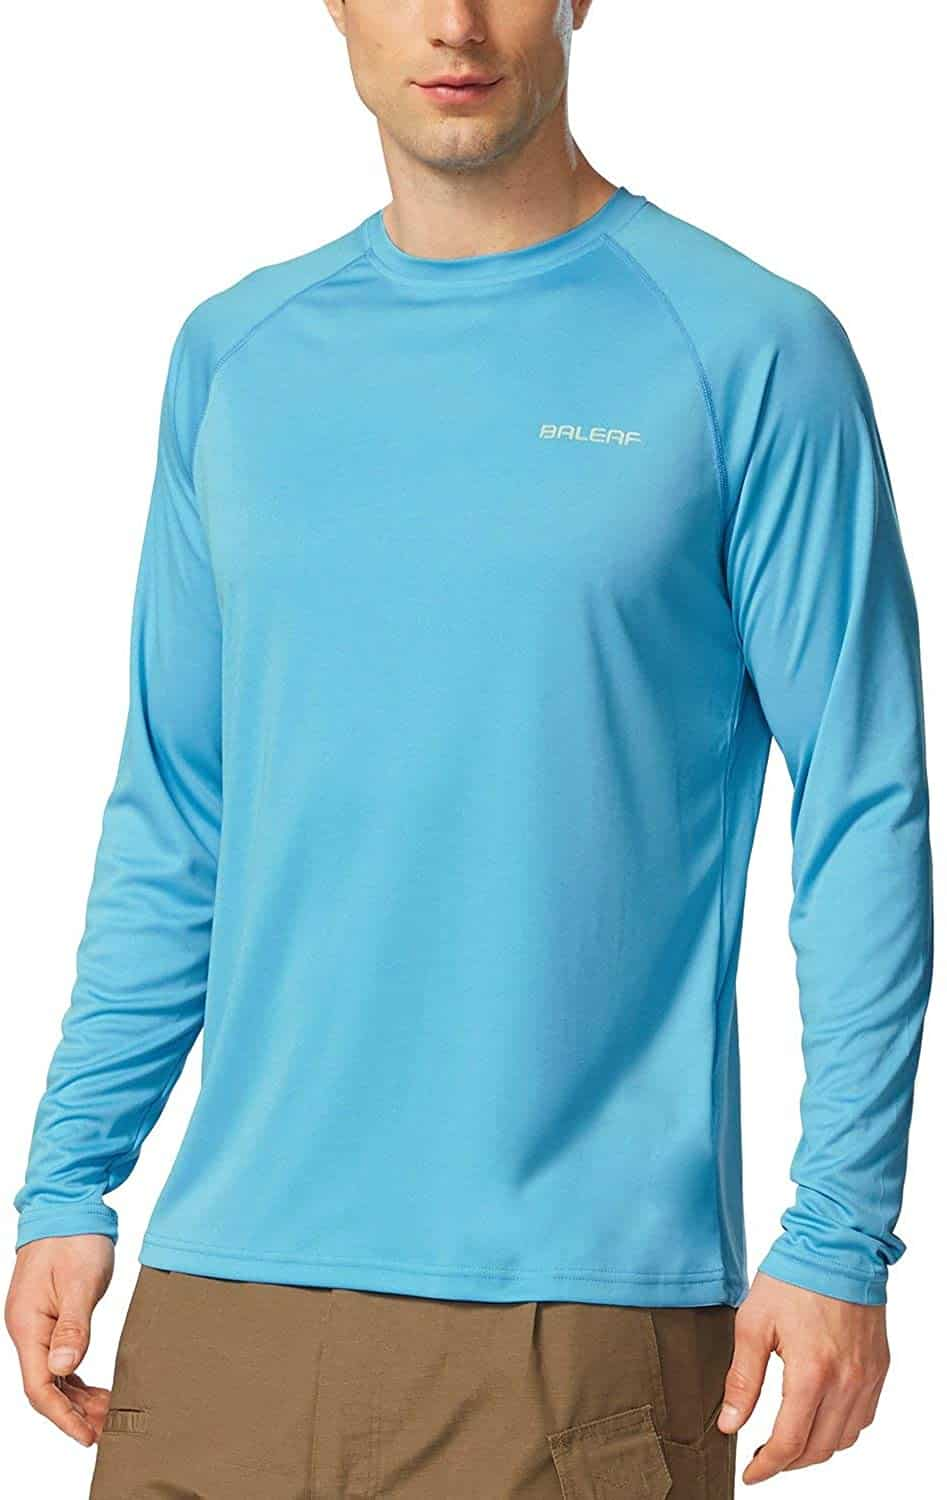 Outdoor Long Sleeve Shirt by Baleaf